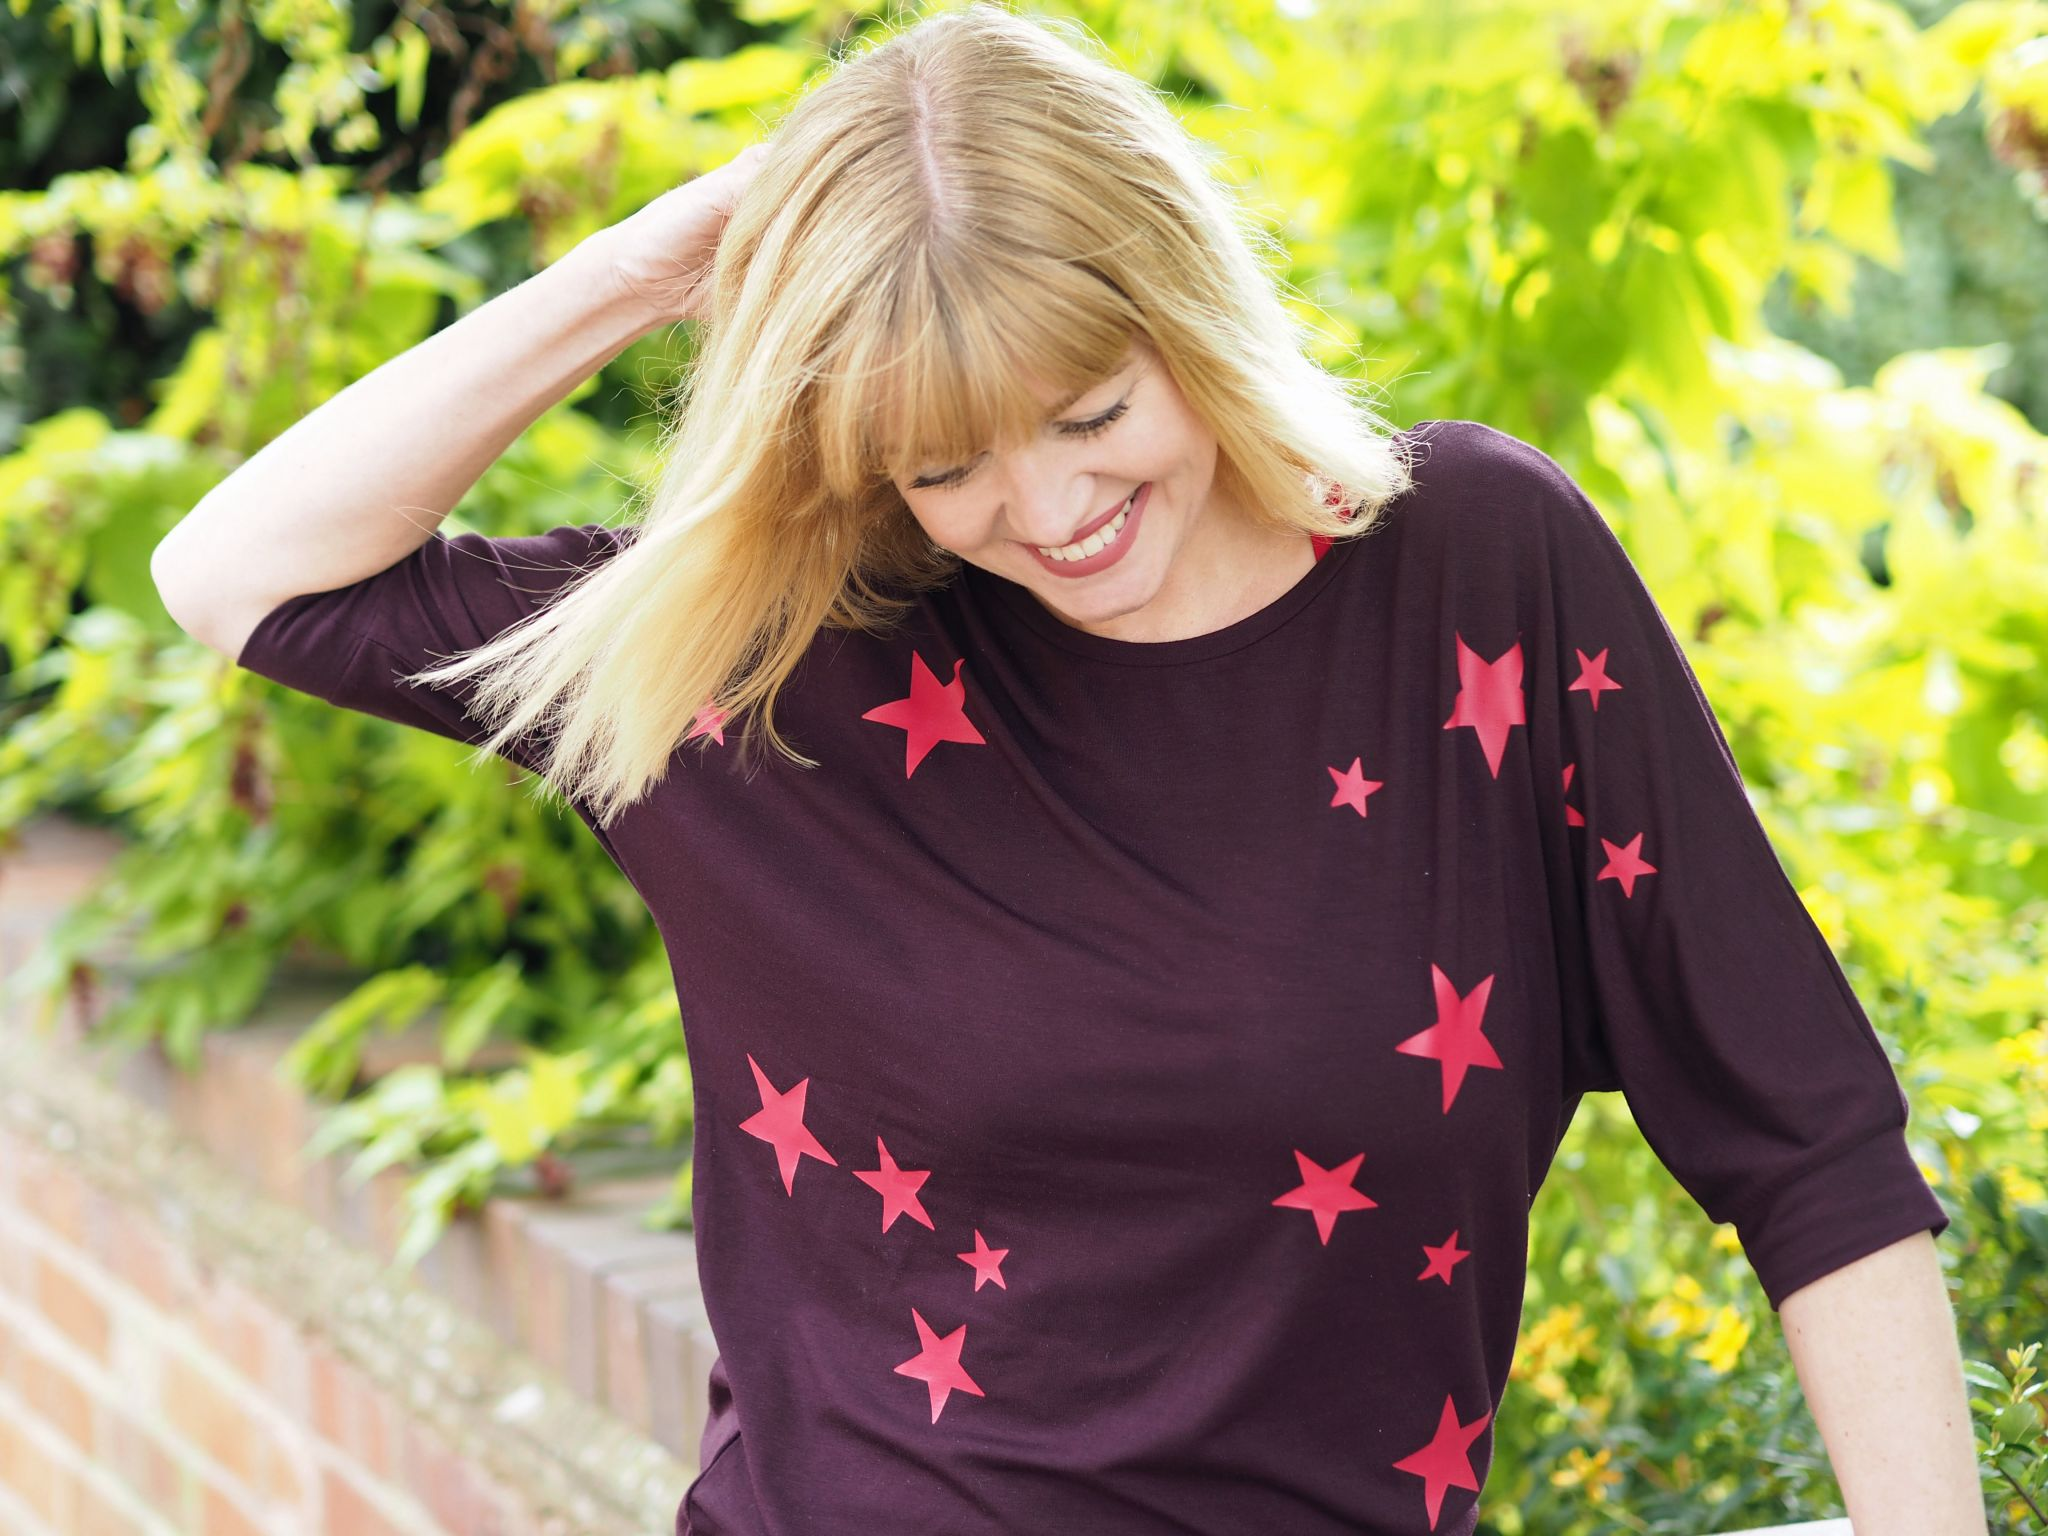 What-Lizzy-loves-bamboo-yoga-clothes-stars -top